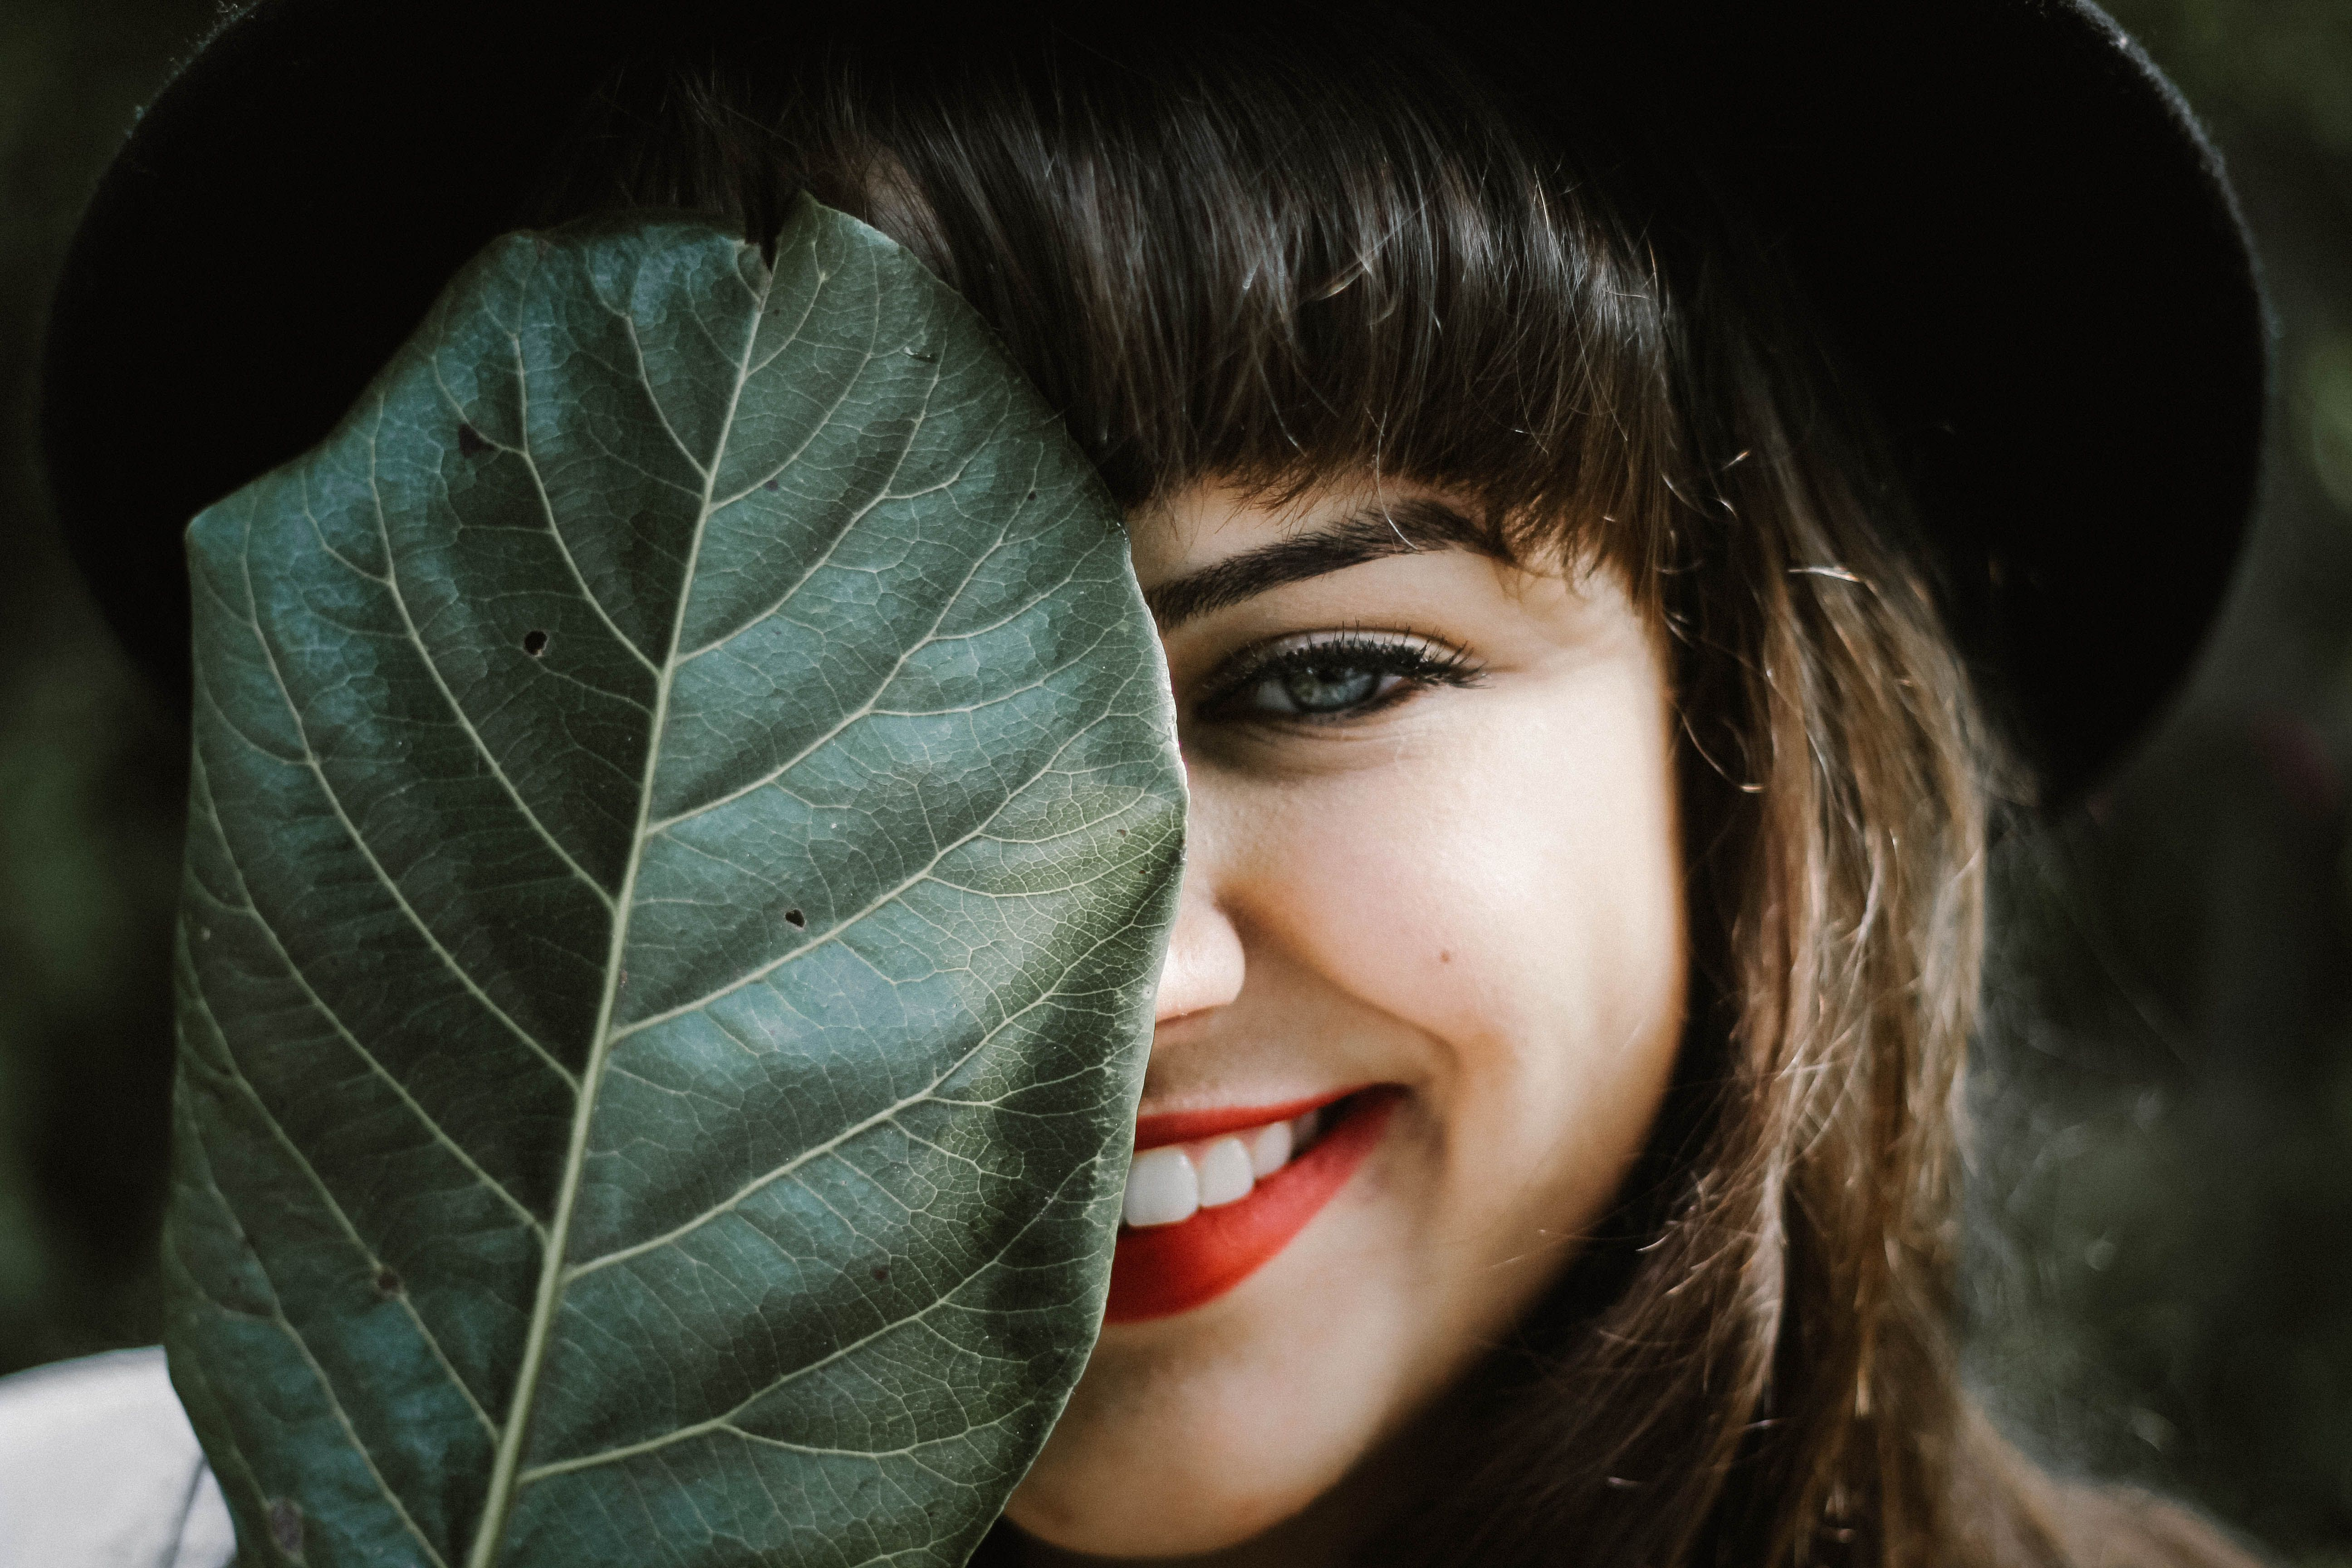 girl with bangs holding a leaf and smiling